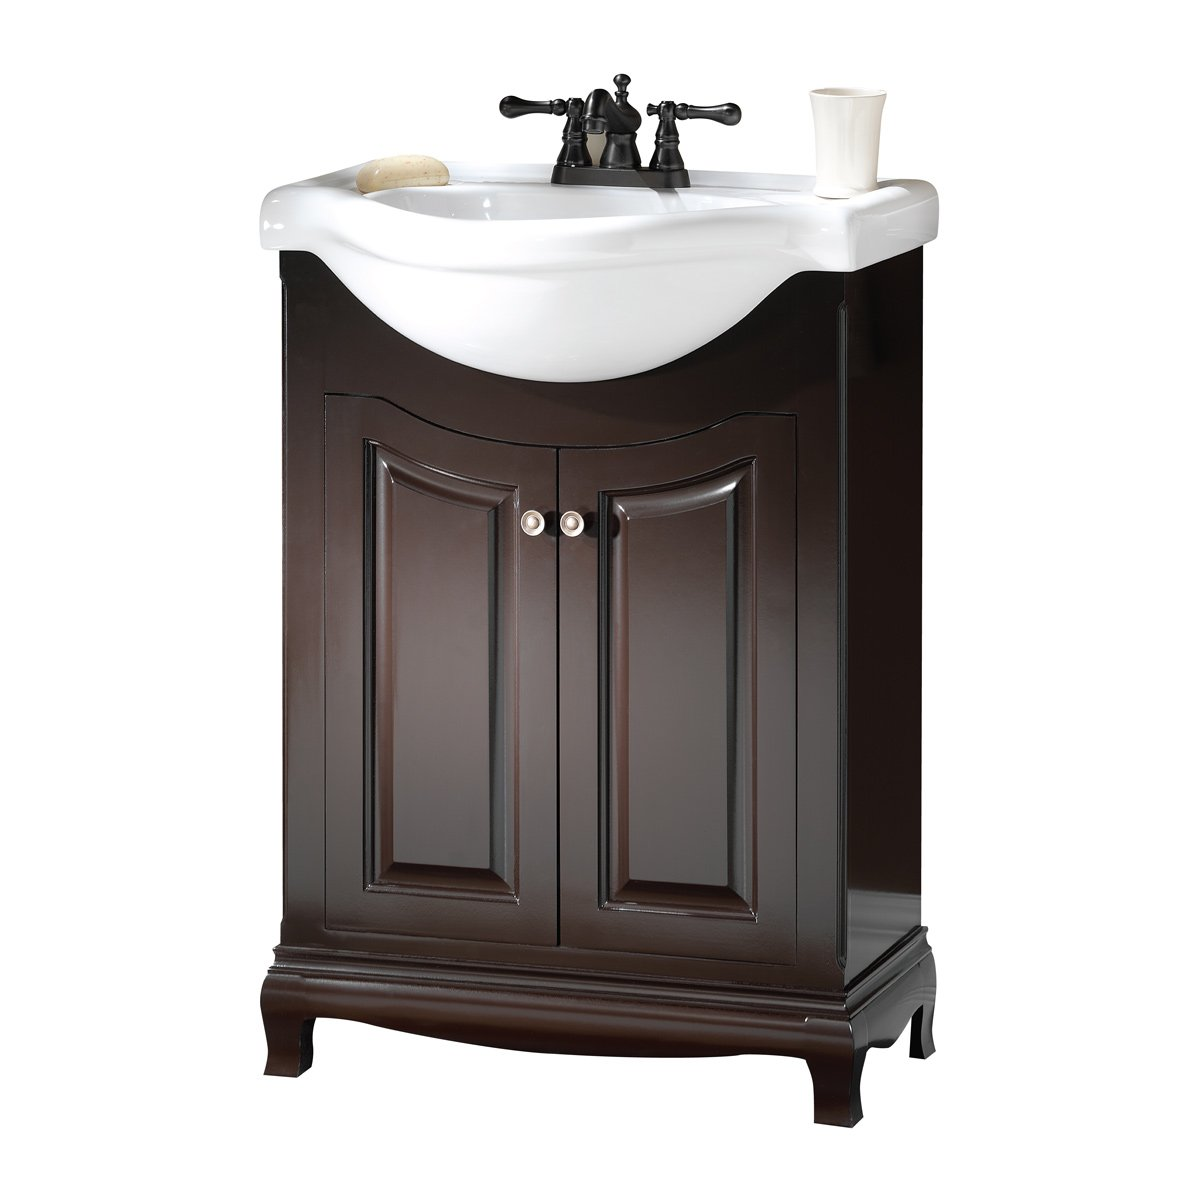 Foremost PAEA2534 Palermo Euro Bath Vanity with